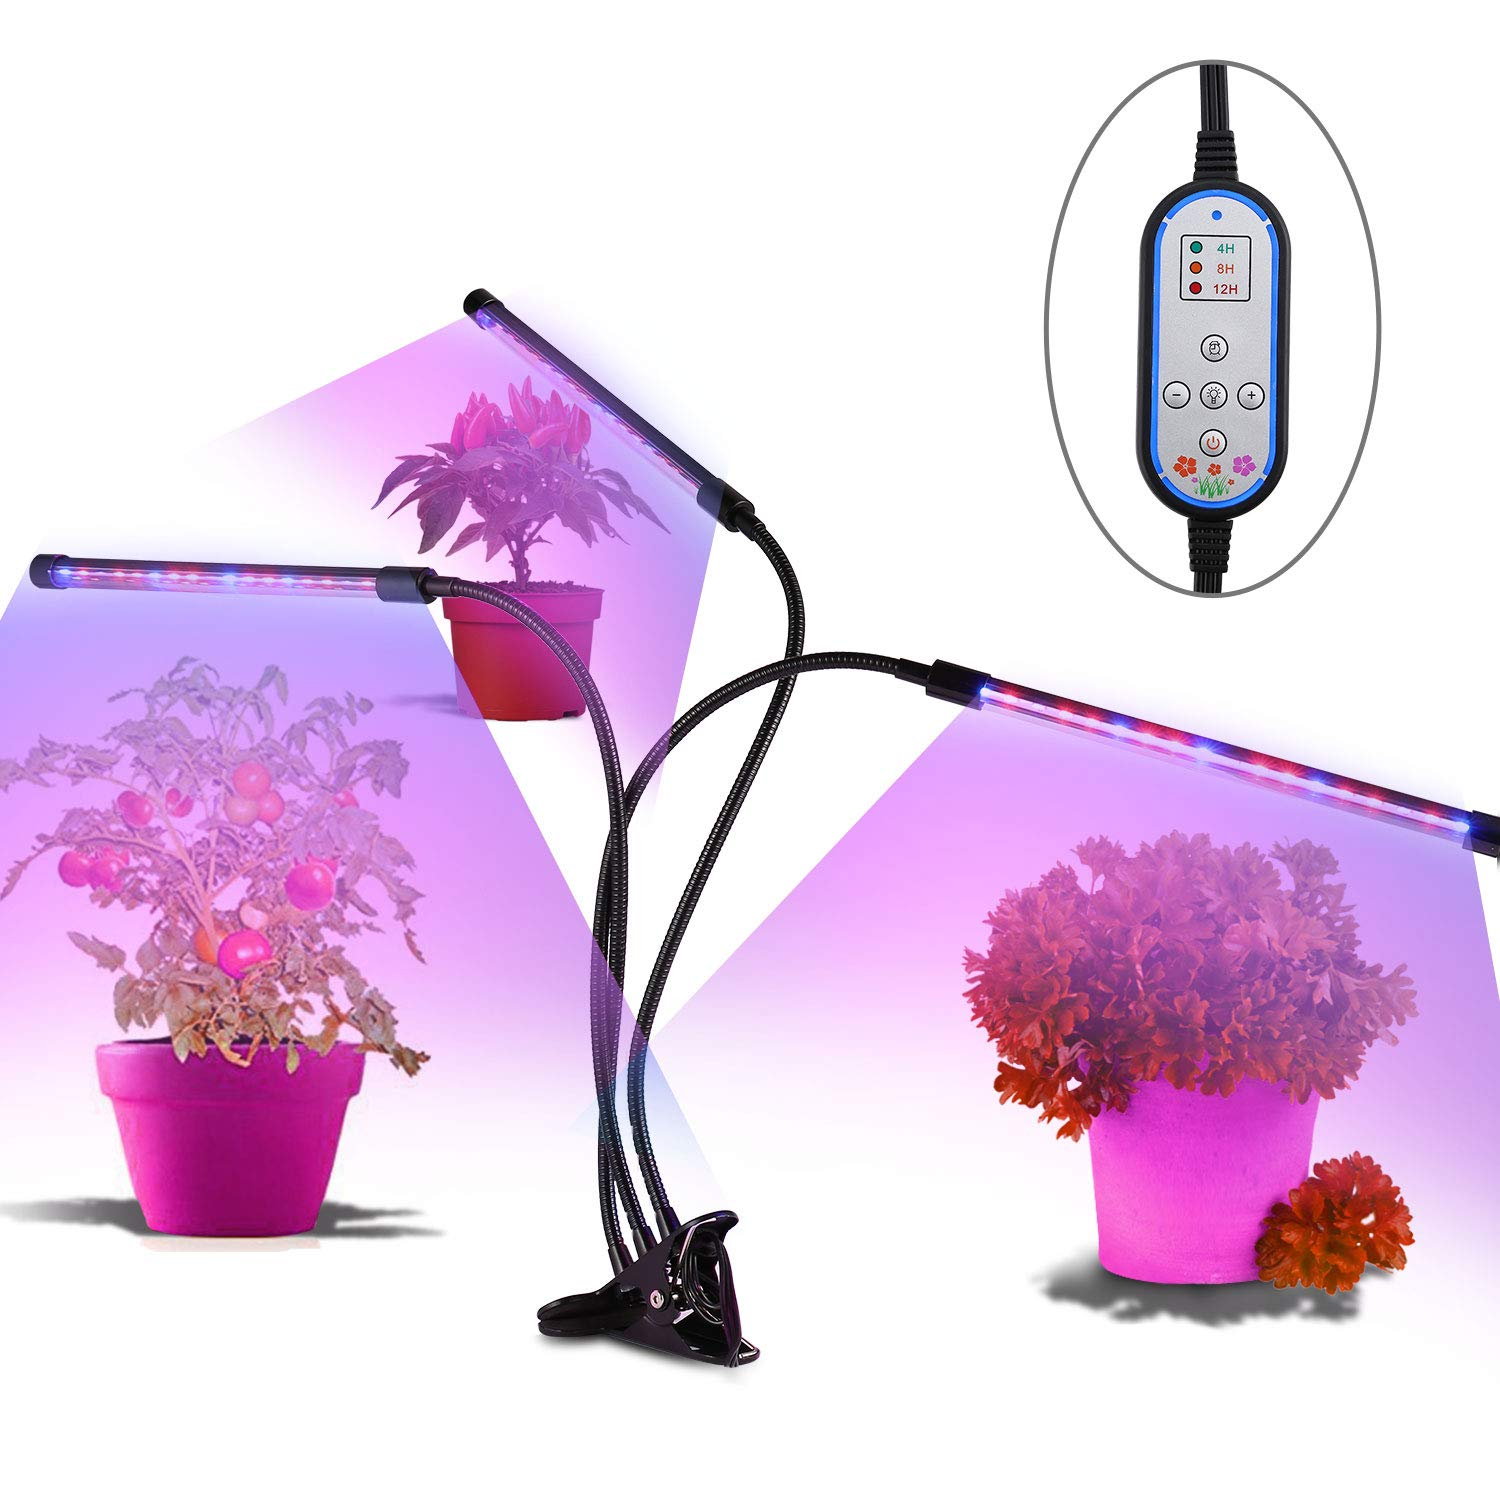 [2018 Upgraded]Cycle Timing Grow Light,OUTAD Auto On/Off Everyday with 3-Head Timing Lamp 36W Plant Grow Lamp with Three on/Off Switch, 4/8/12H Timer,8 Dimmable Levels